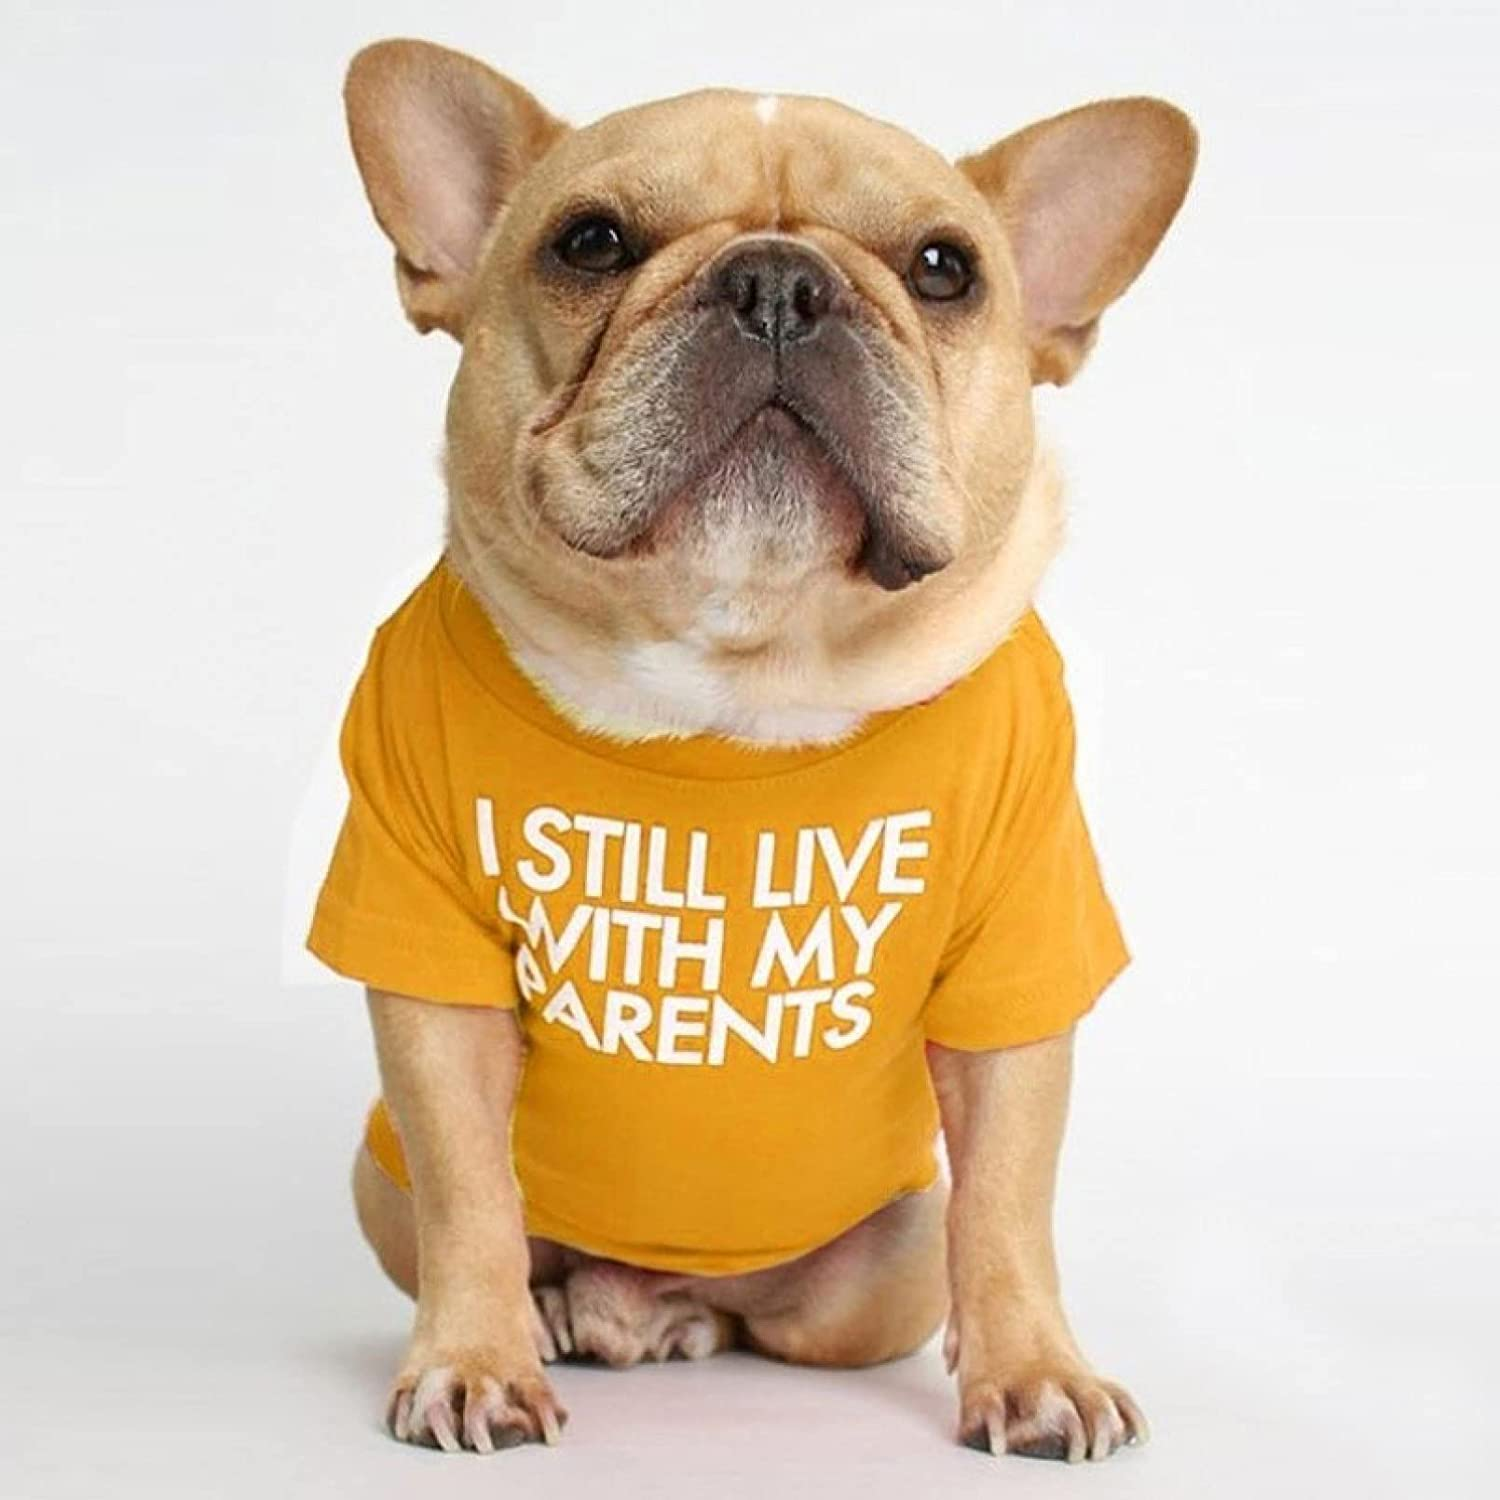 MDKAZ Clothes for Super sale period limited Free Shipping Cheap Bargain Gift Pets Letter Bulldog Shirt French Stret Printed